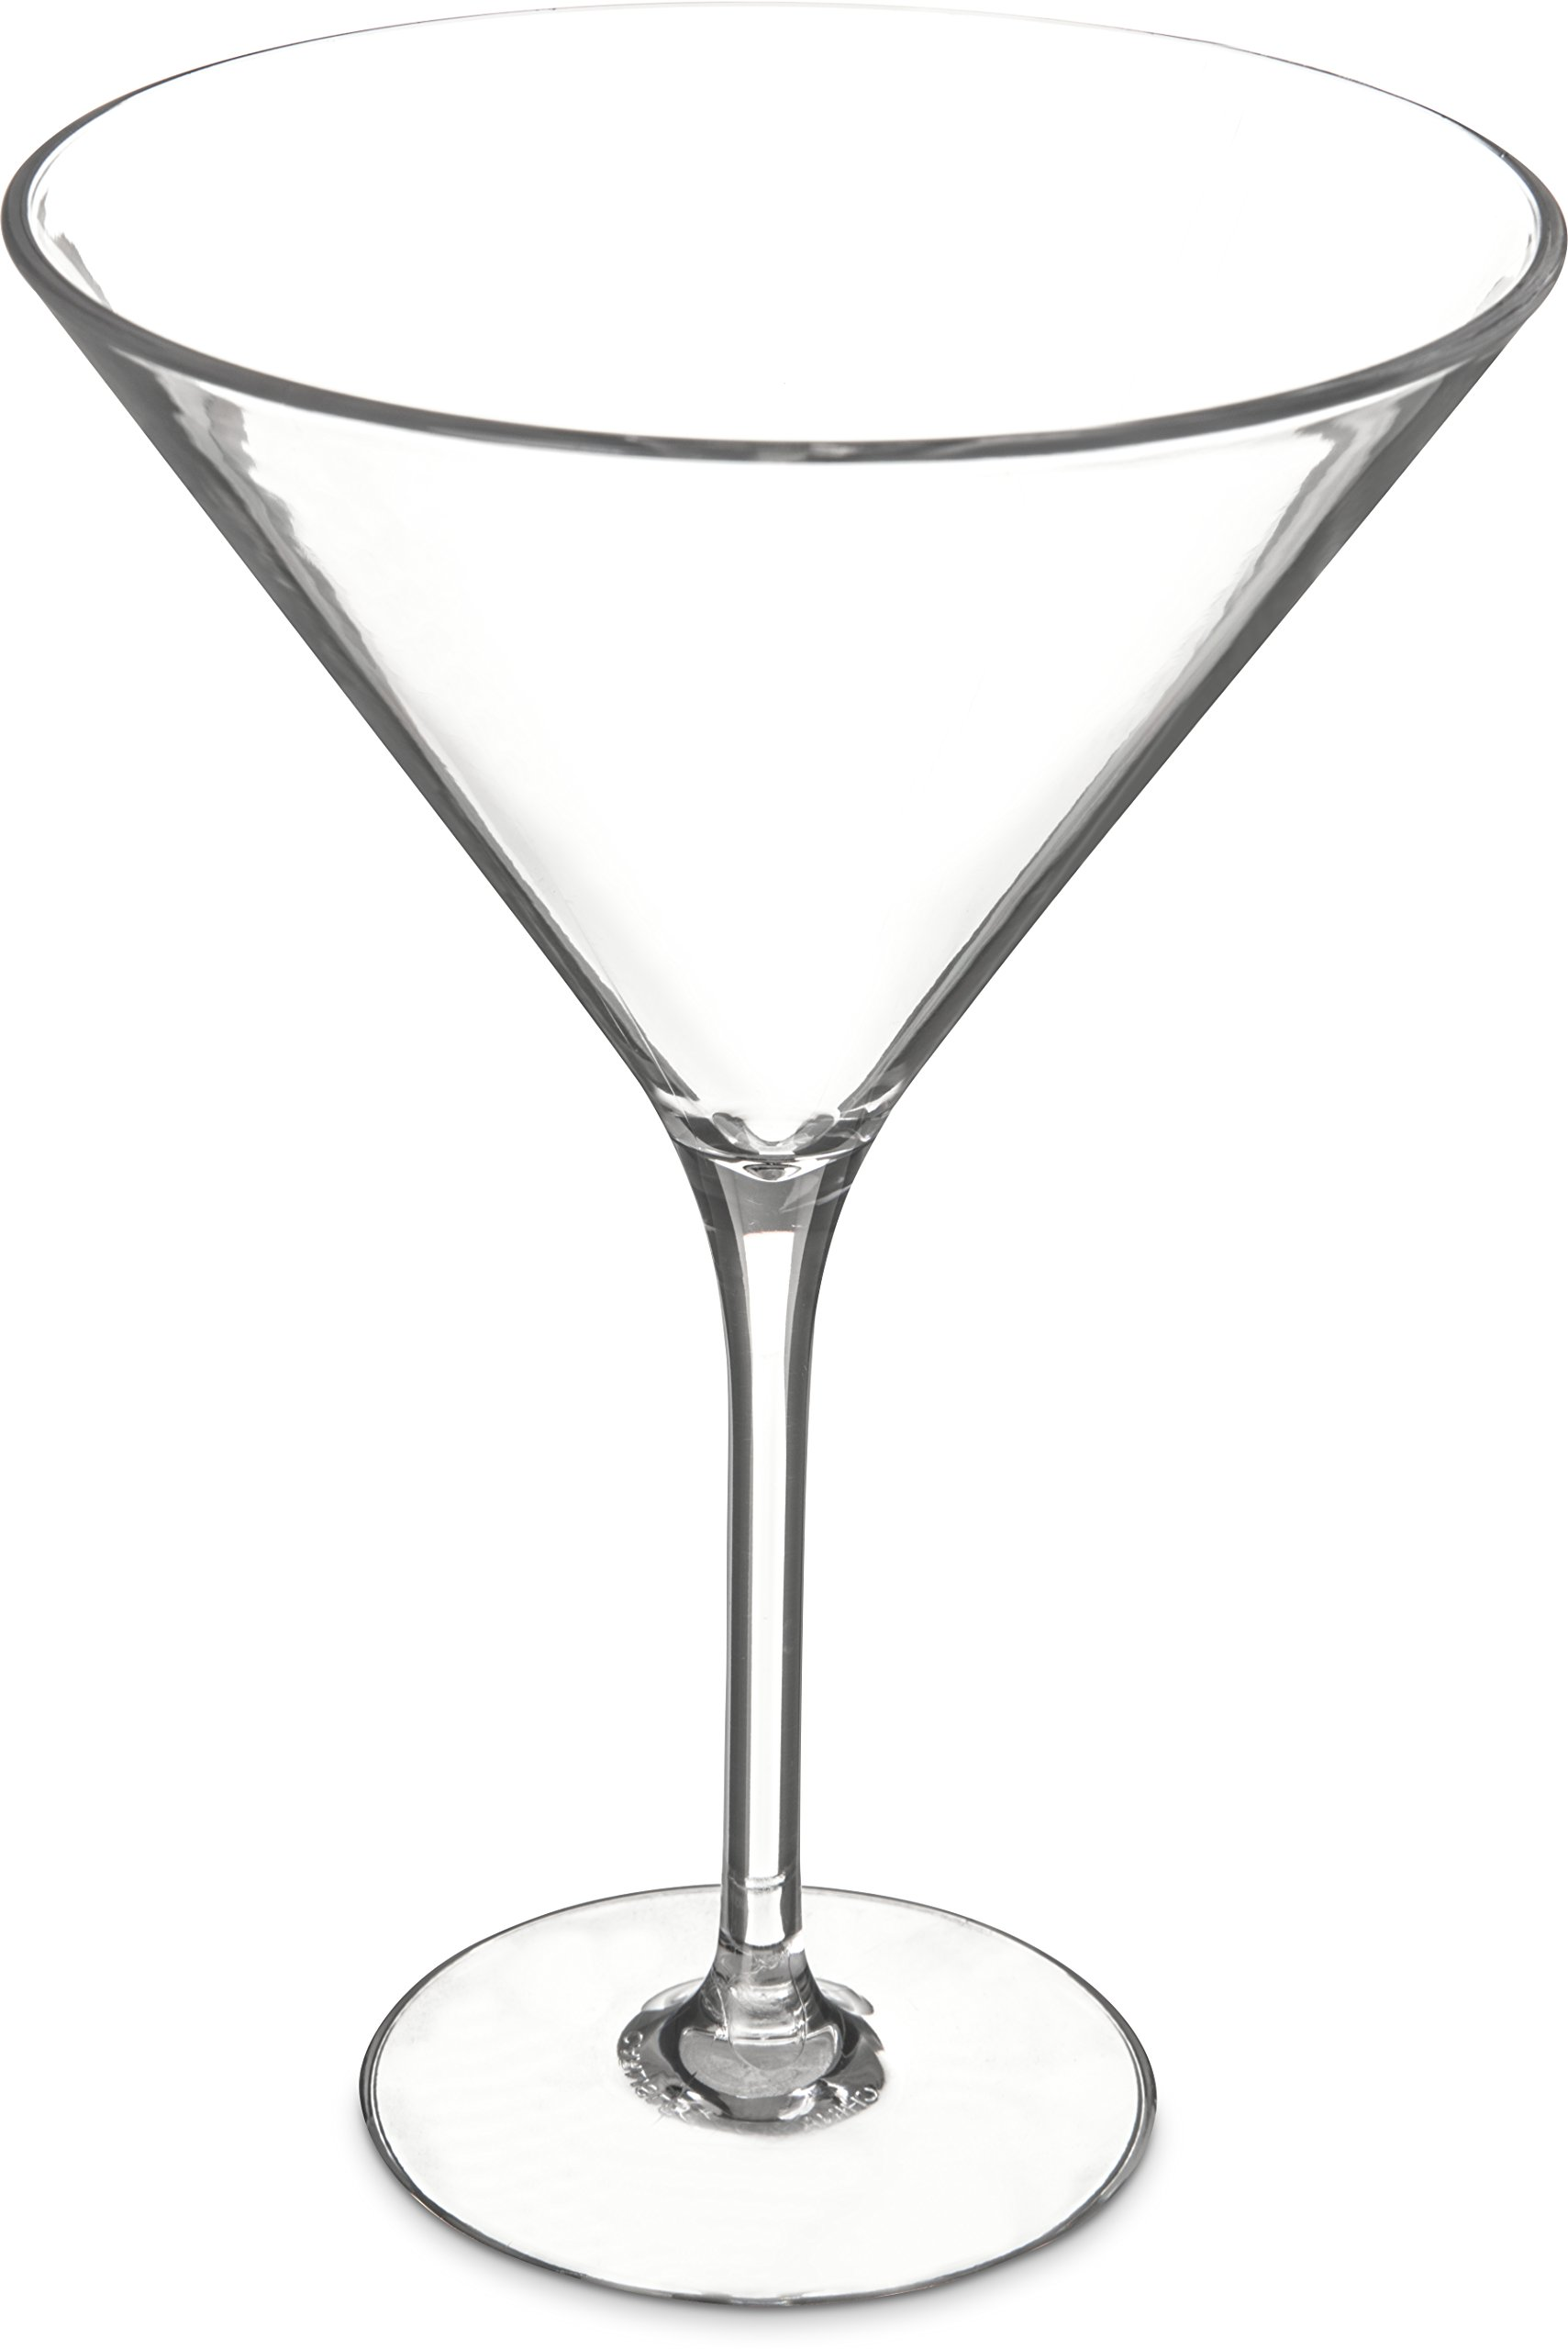 Carlisle 564607 Alibi Shatter-Resistant Plastic Martini Glass, 9 oz (Set of 24)